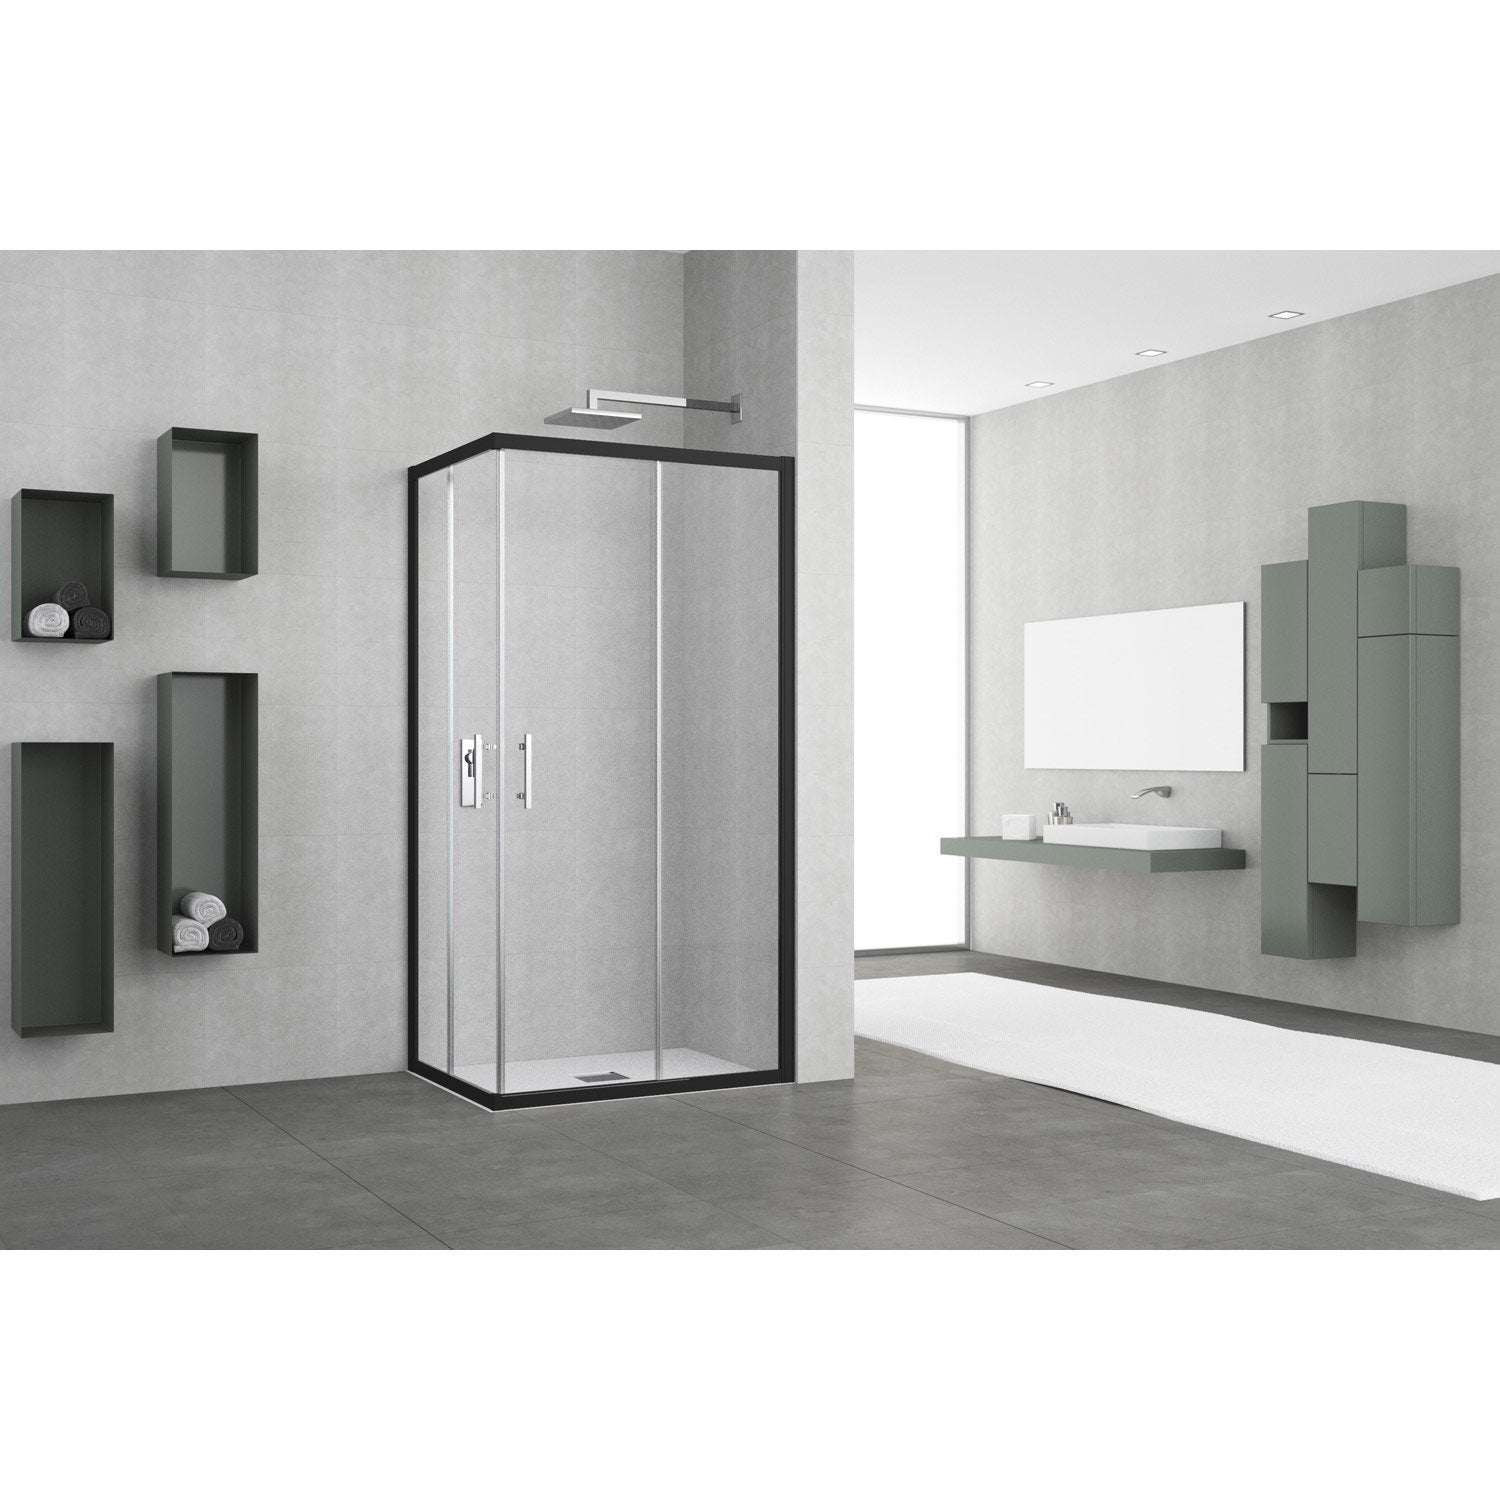 porte de douche coulissante angle rectangle x cm transparent elyt leroy merlin. Black Bedroom Furniture Sets. Home Design Ideas